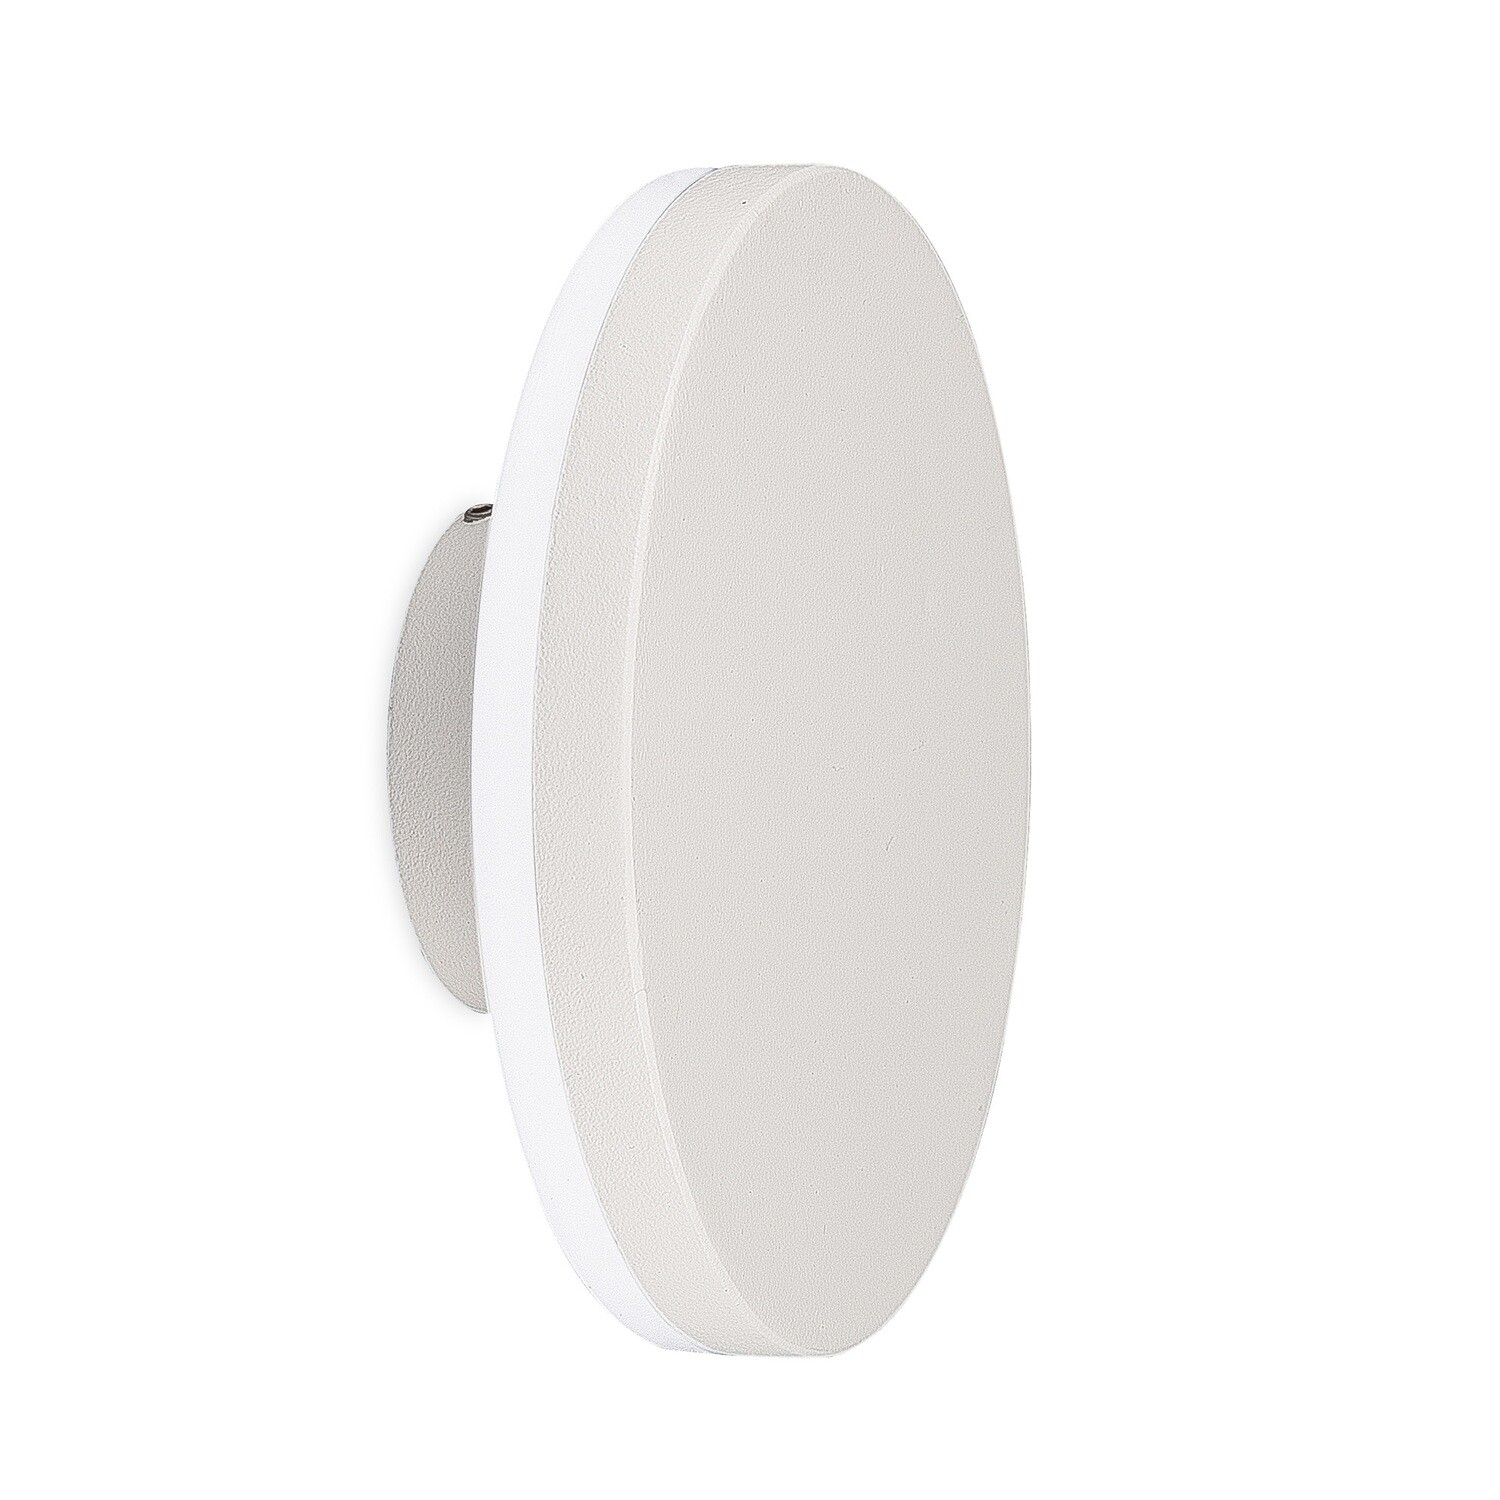 Bora Round Wall Lamp, 9.6W LED, 3000K, 720lm, IP54, White